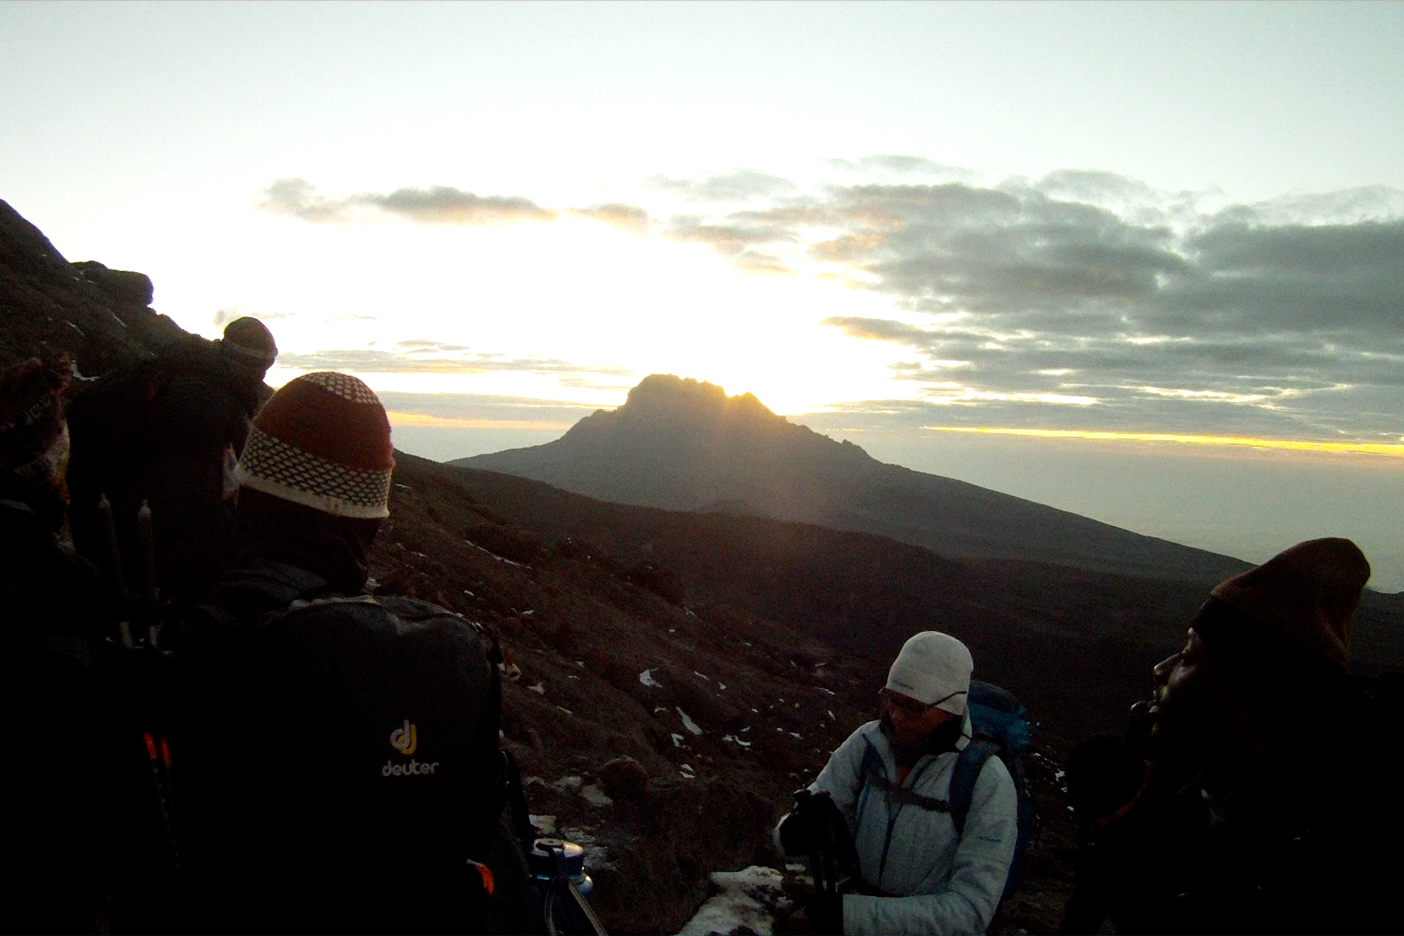 Sunrise over Mawenzi Peak with Rob (far left), Elias, John, Auston, and Roger hidden behind Gaudence (far right)